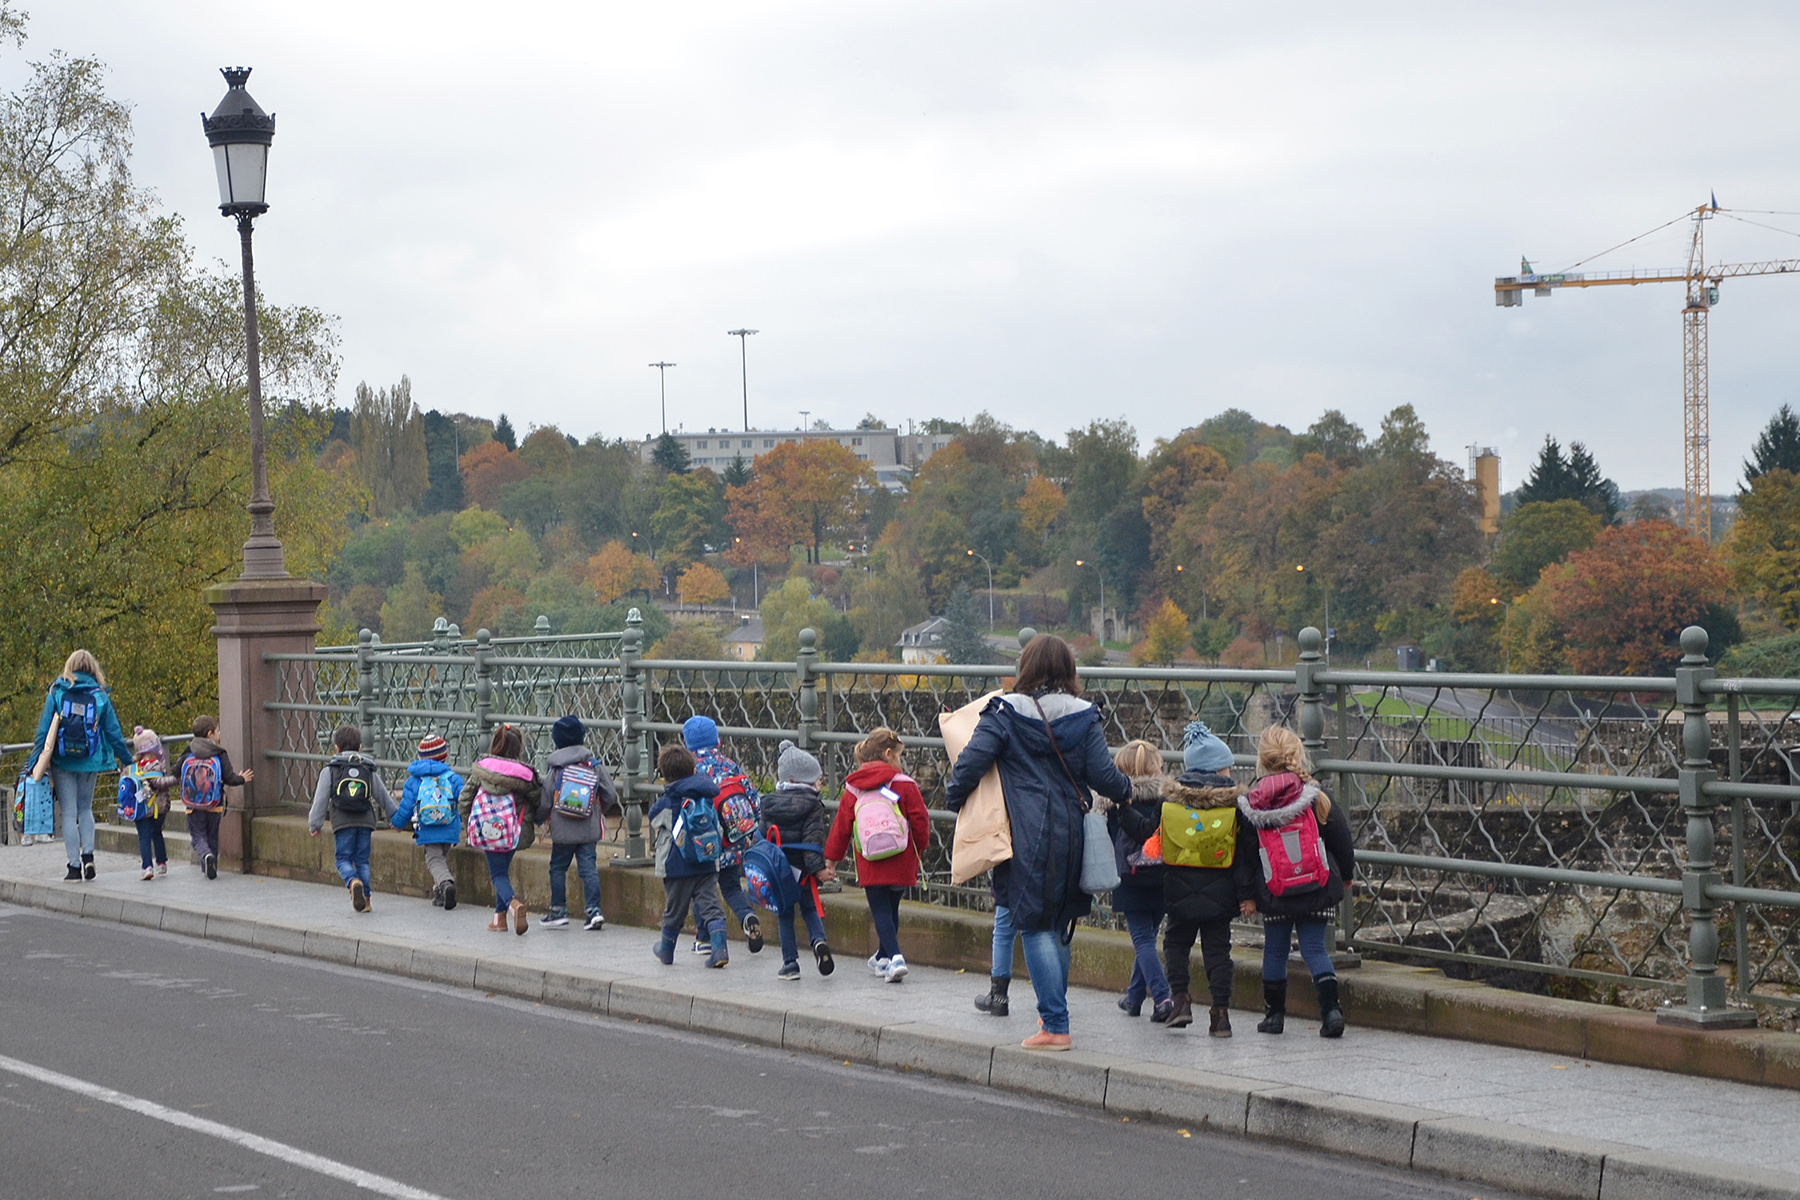 A young class on a school outing in Luxembourg